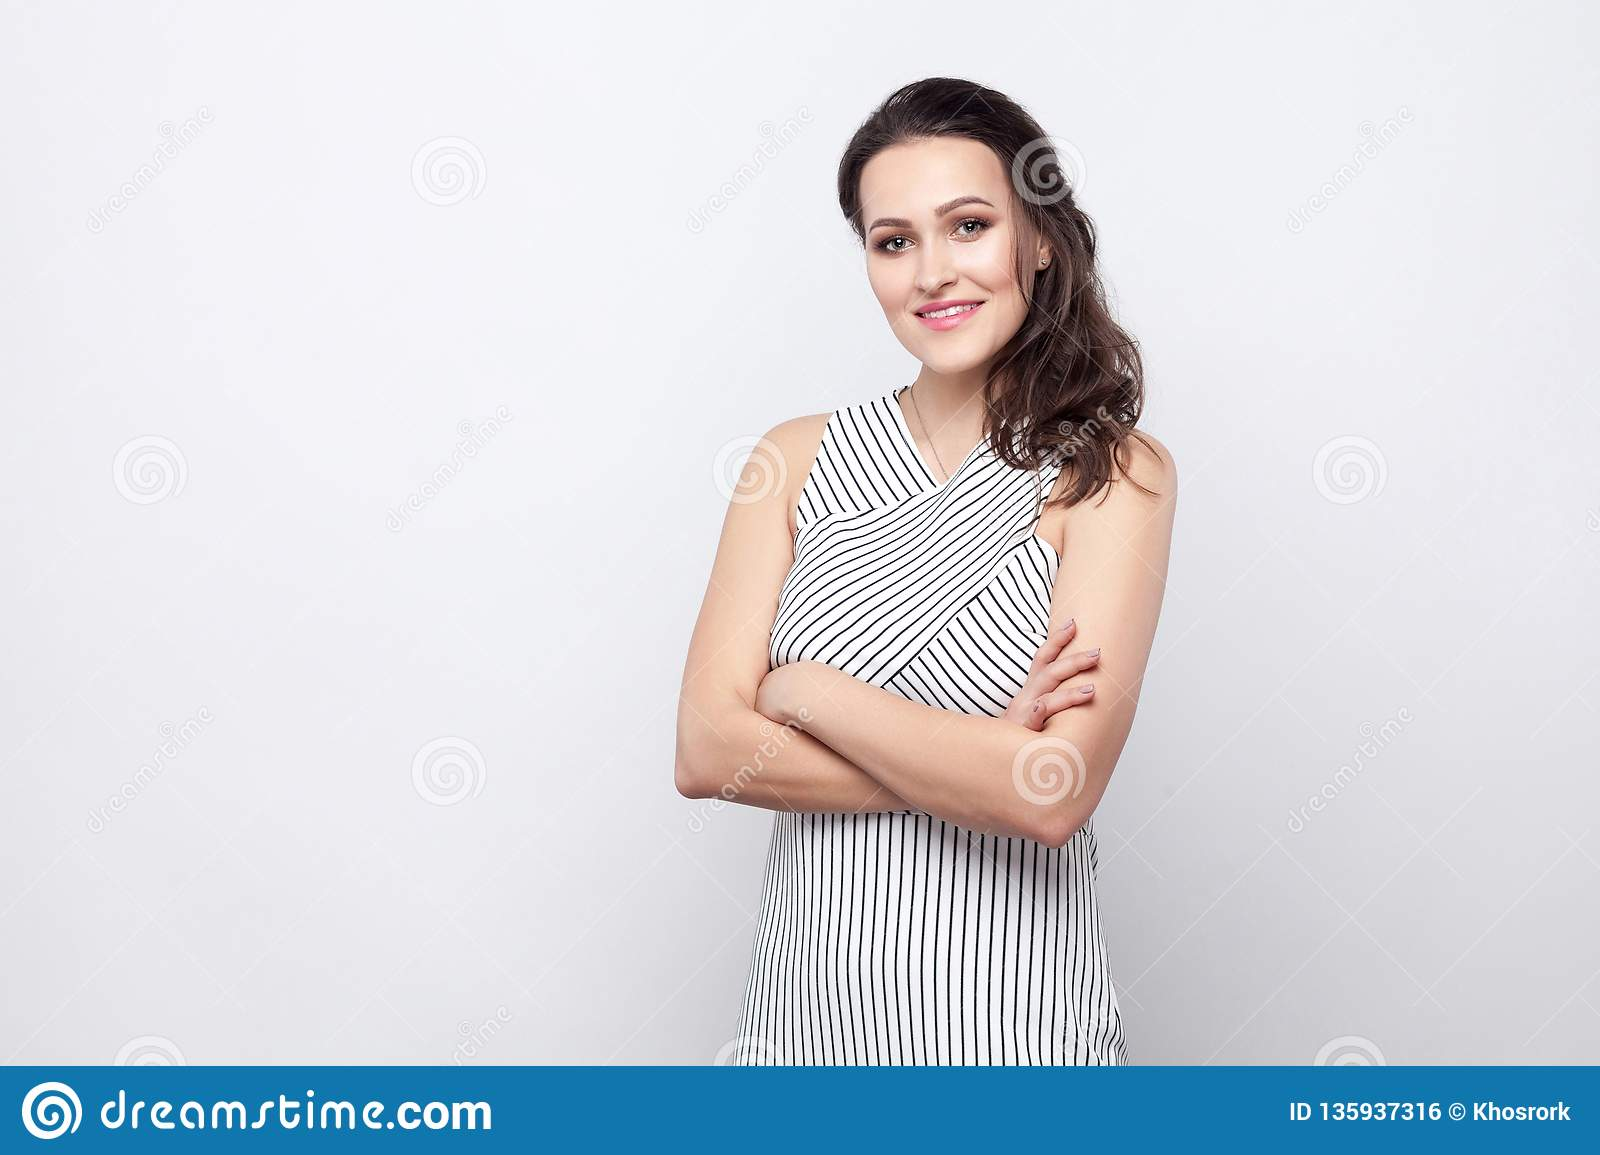 Portrait of happy beautiful young brunette woman with makeup and striped dress standing with crossed arms and looking at camera